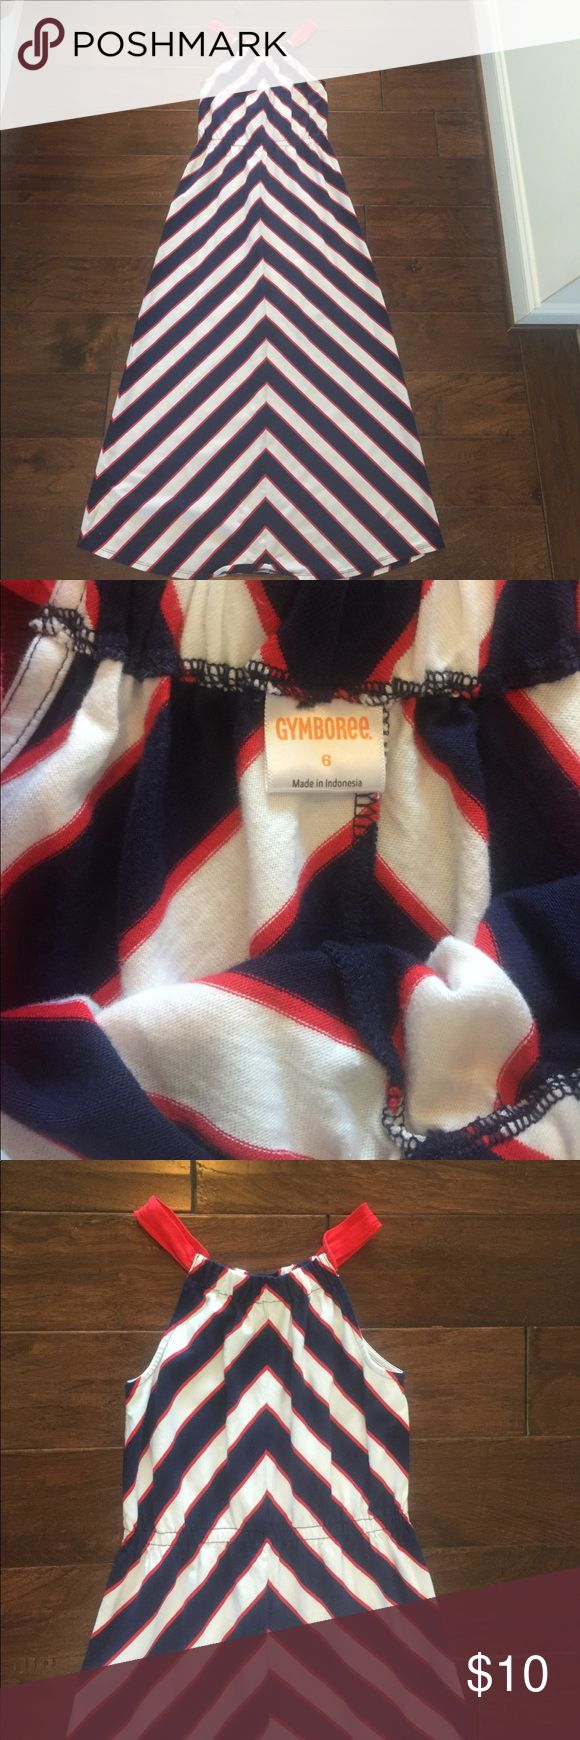 Chevron Gymboree Dress Size 6 Womens dress from Gymboree. White with red and blue chevrons. Worn once, in perfect condition! Gymboree Dresses Maxi